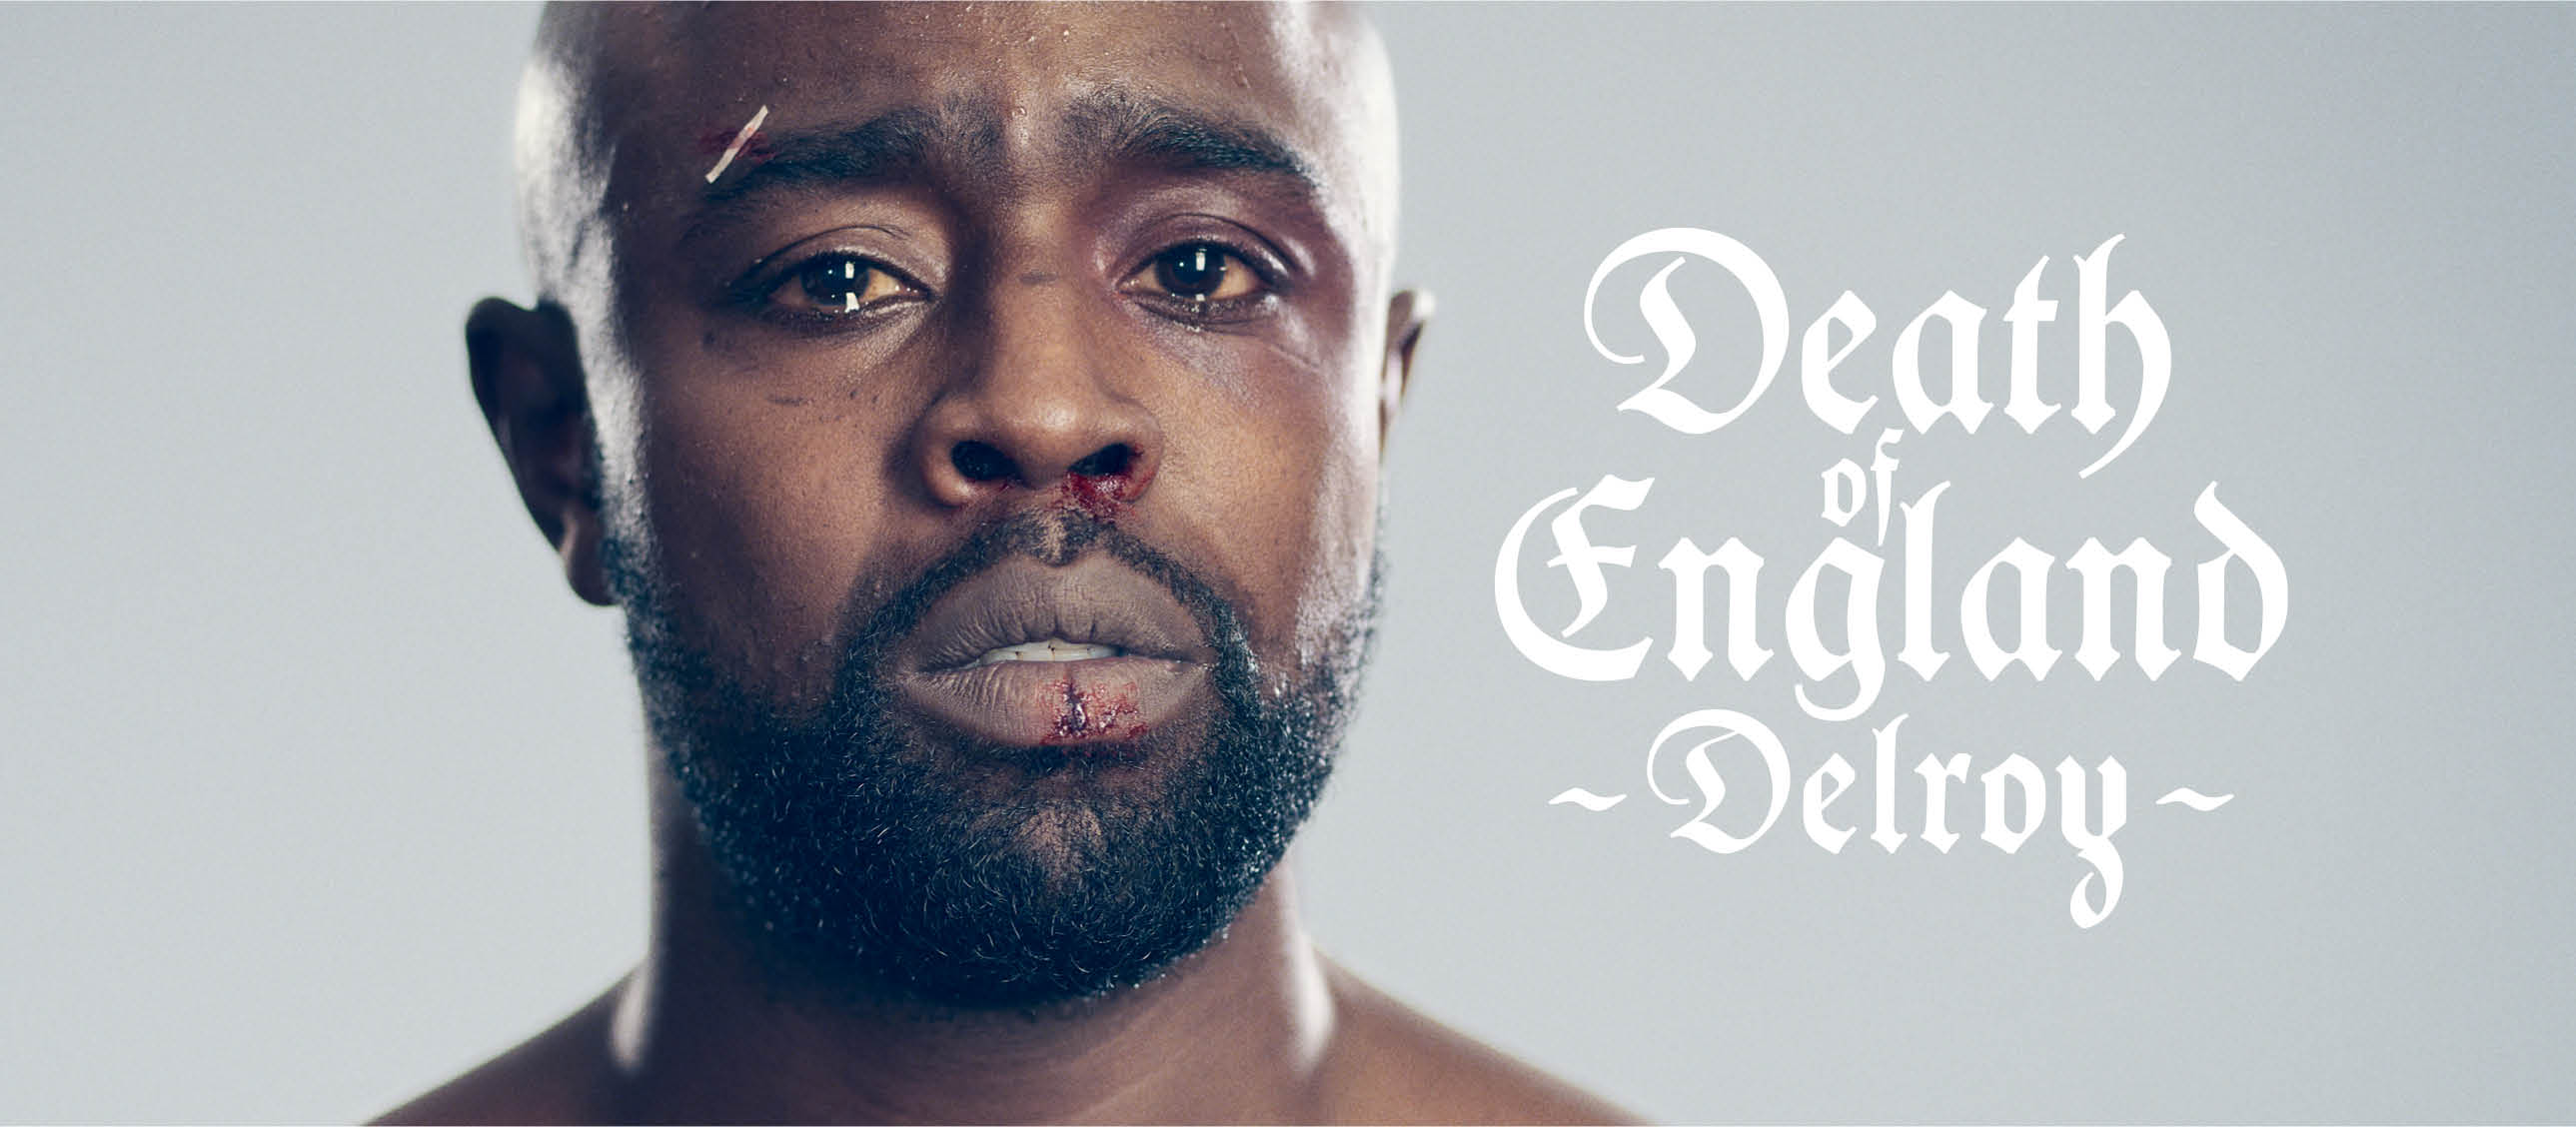 Death of England: Delroy - portrait of Michael Balogun, with cuts and sticking plaster